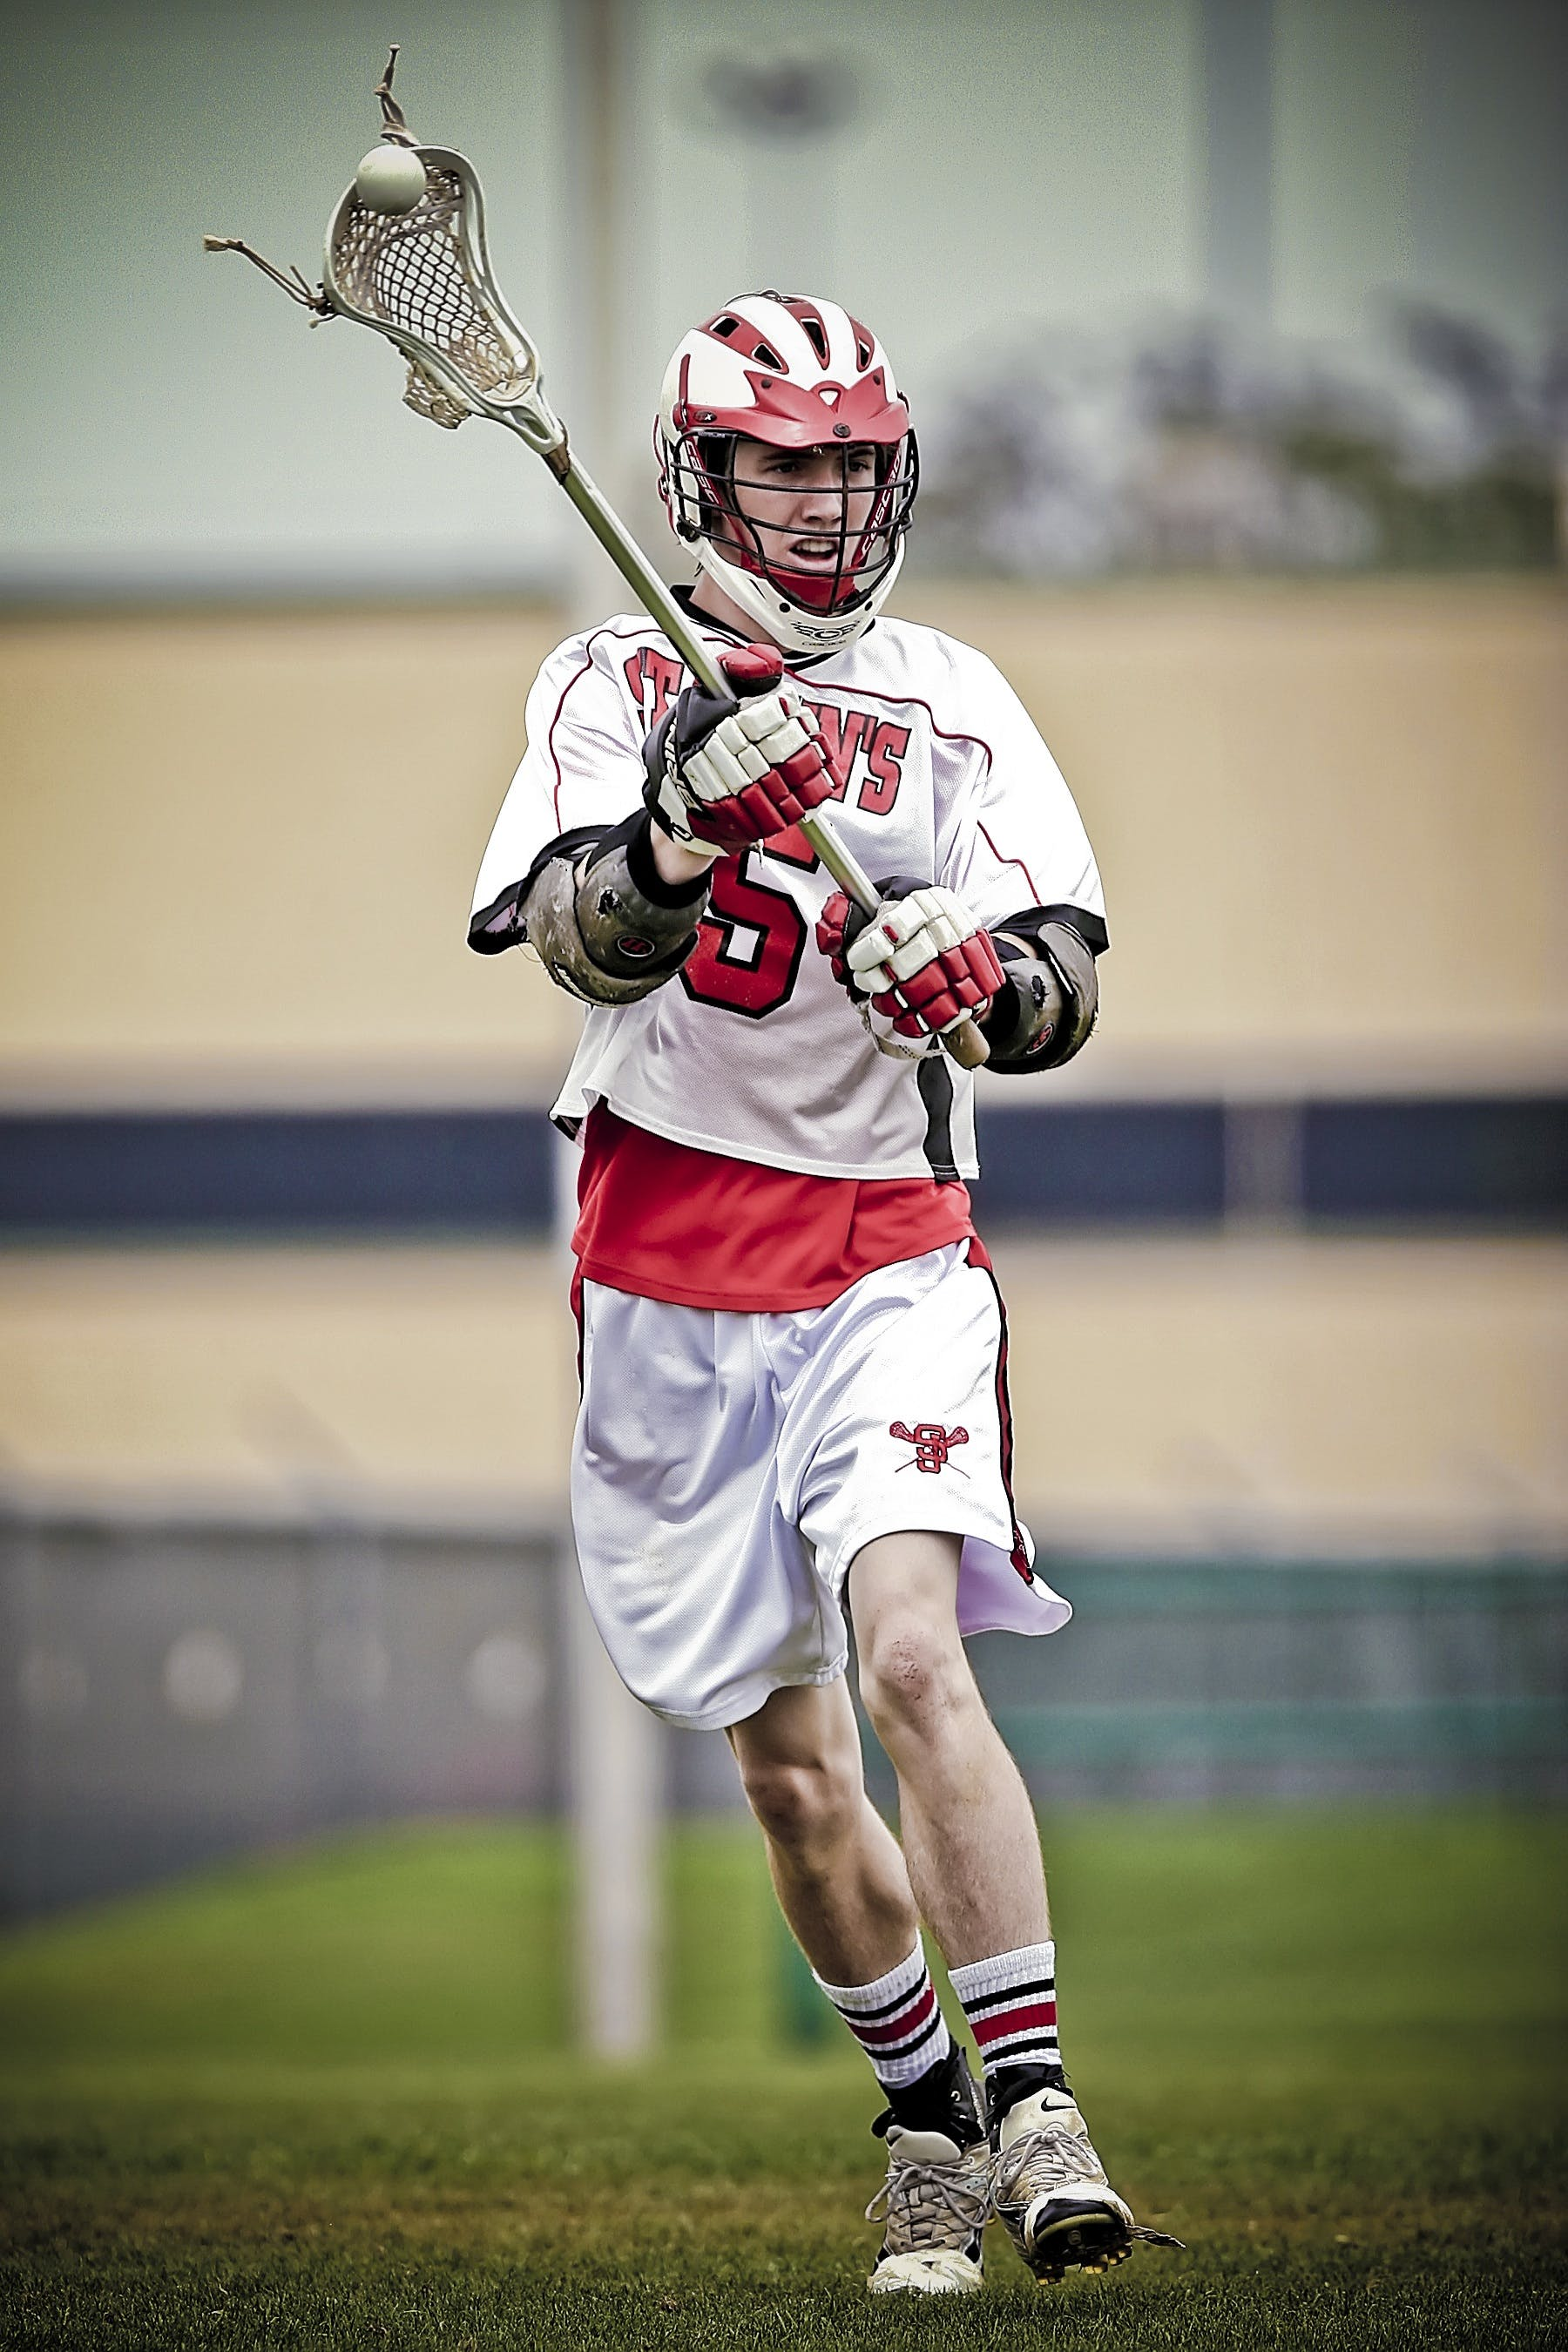 Person Holding Lacrosse Stick during Daytime